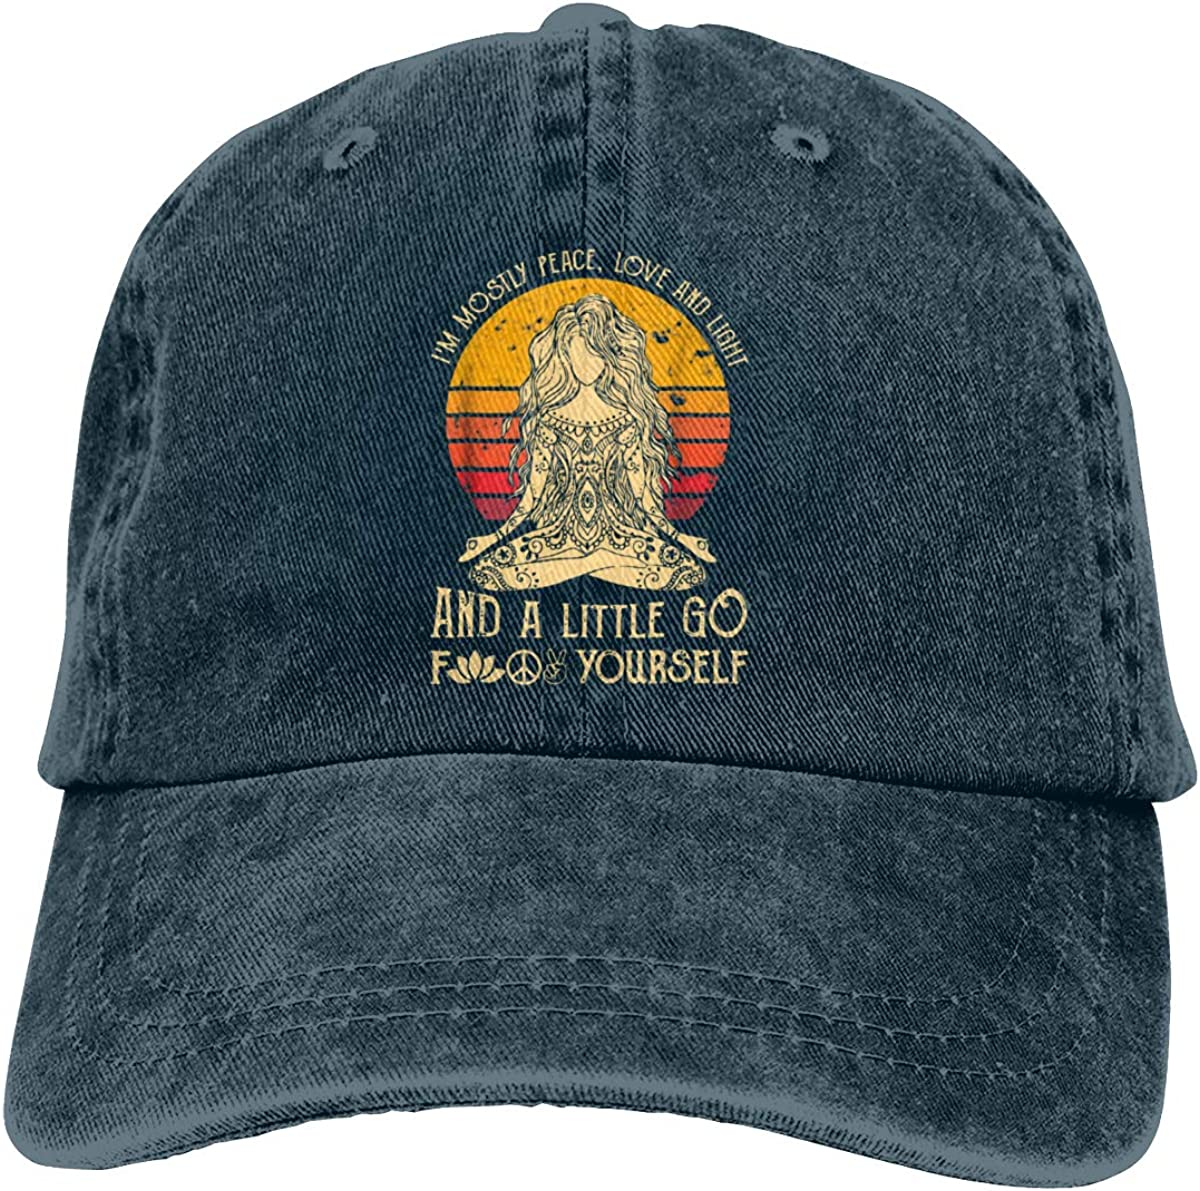 Im Mostly Peace Love and Light and A Little Go Yoga Classic Vintage Denim Caps